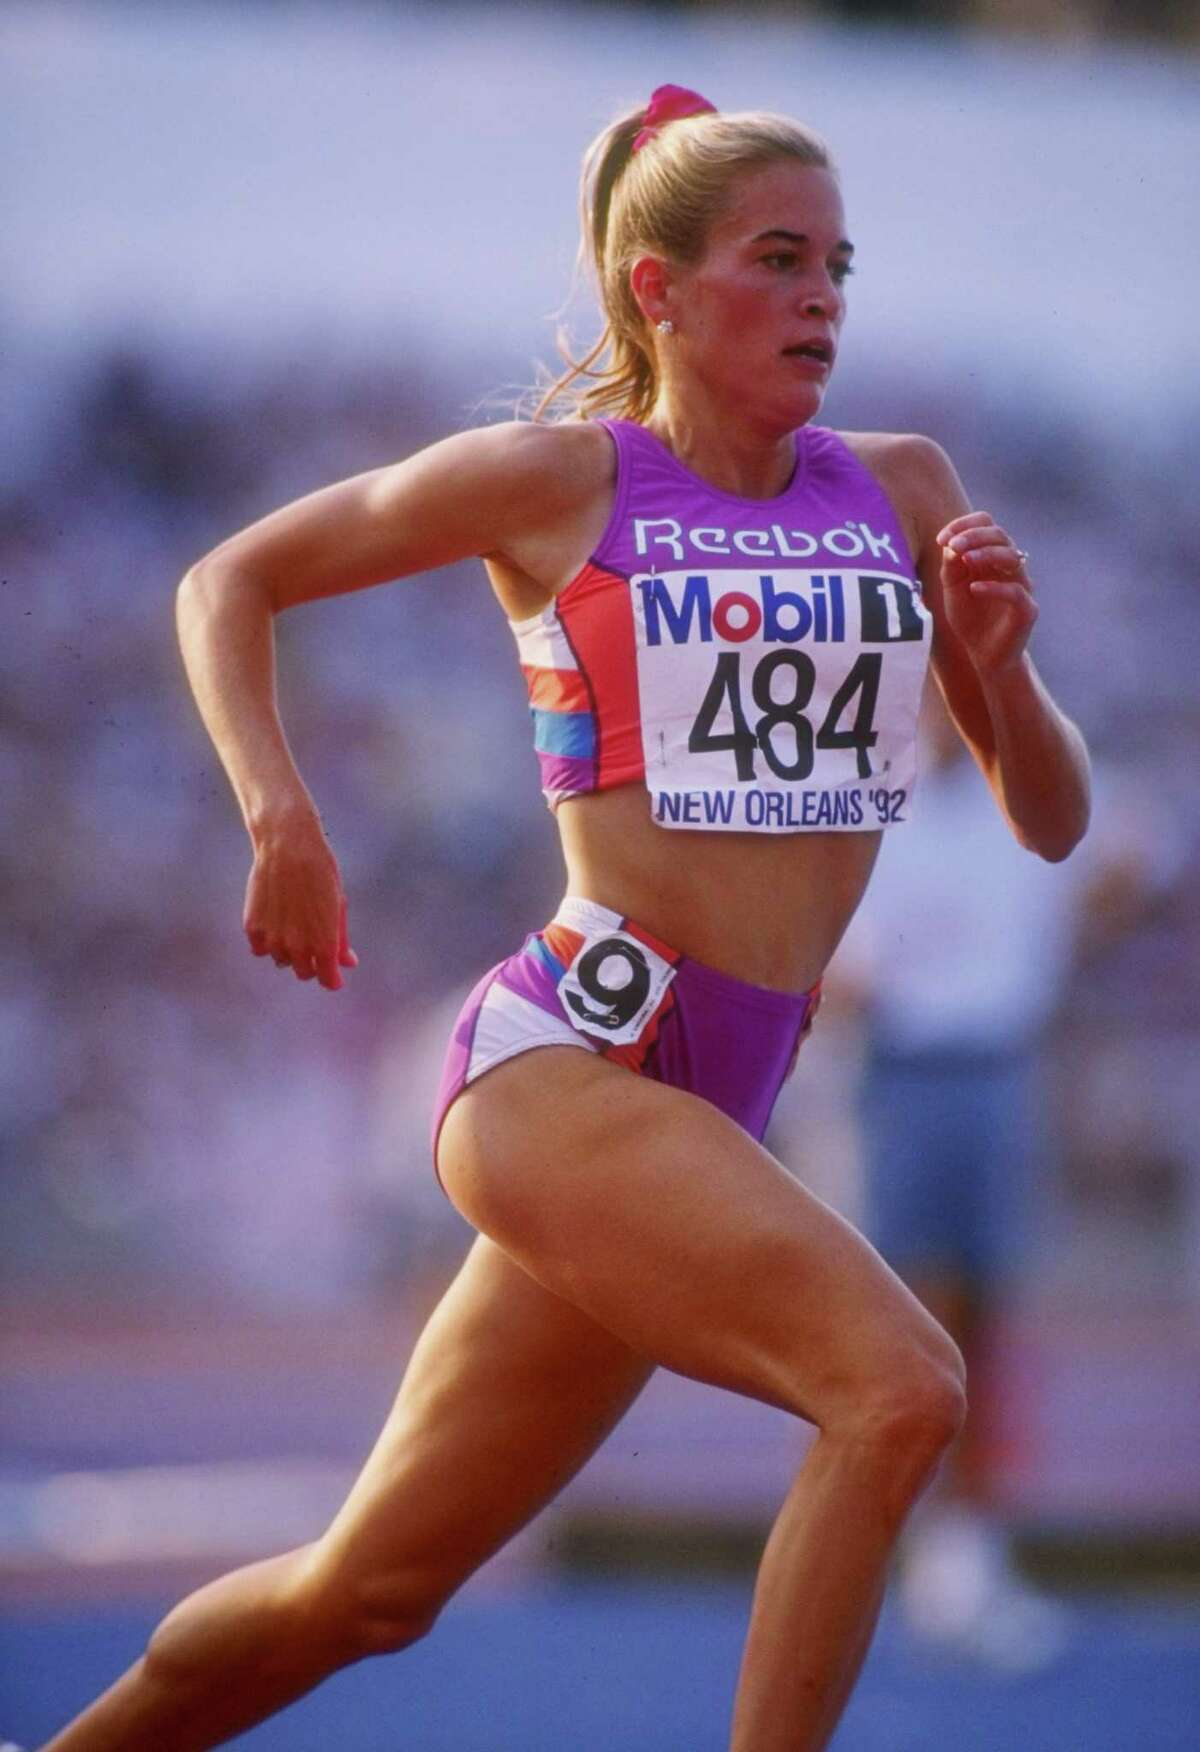 Suzy Hamilton runs down the track during the US Olympic Trials in 1992.